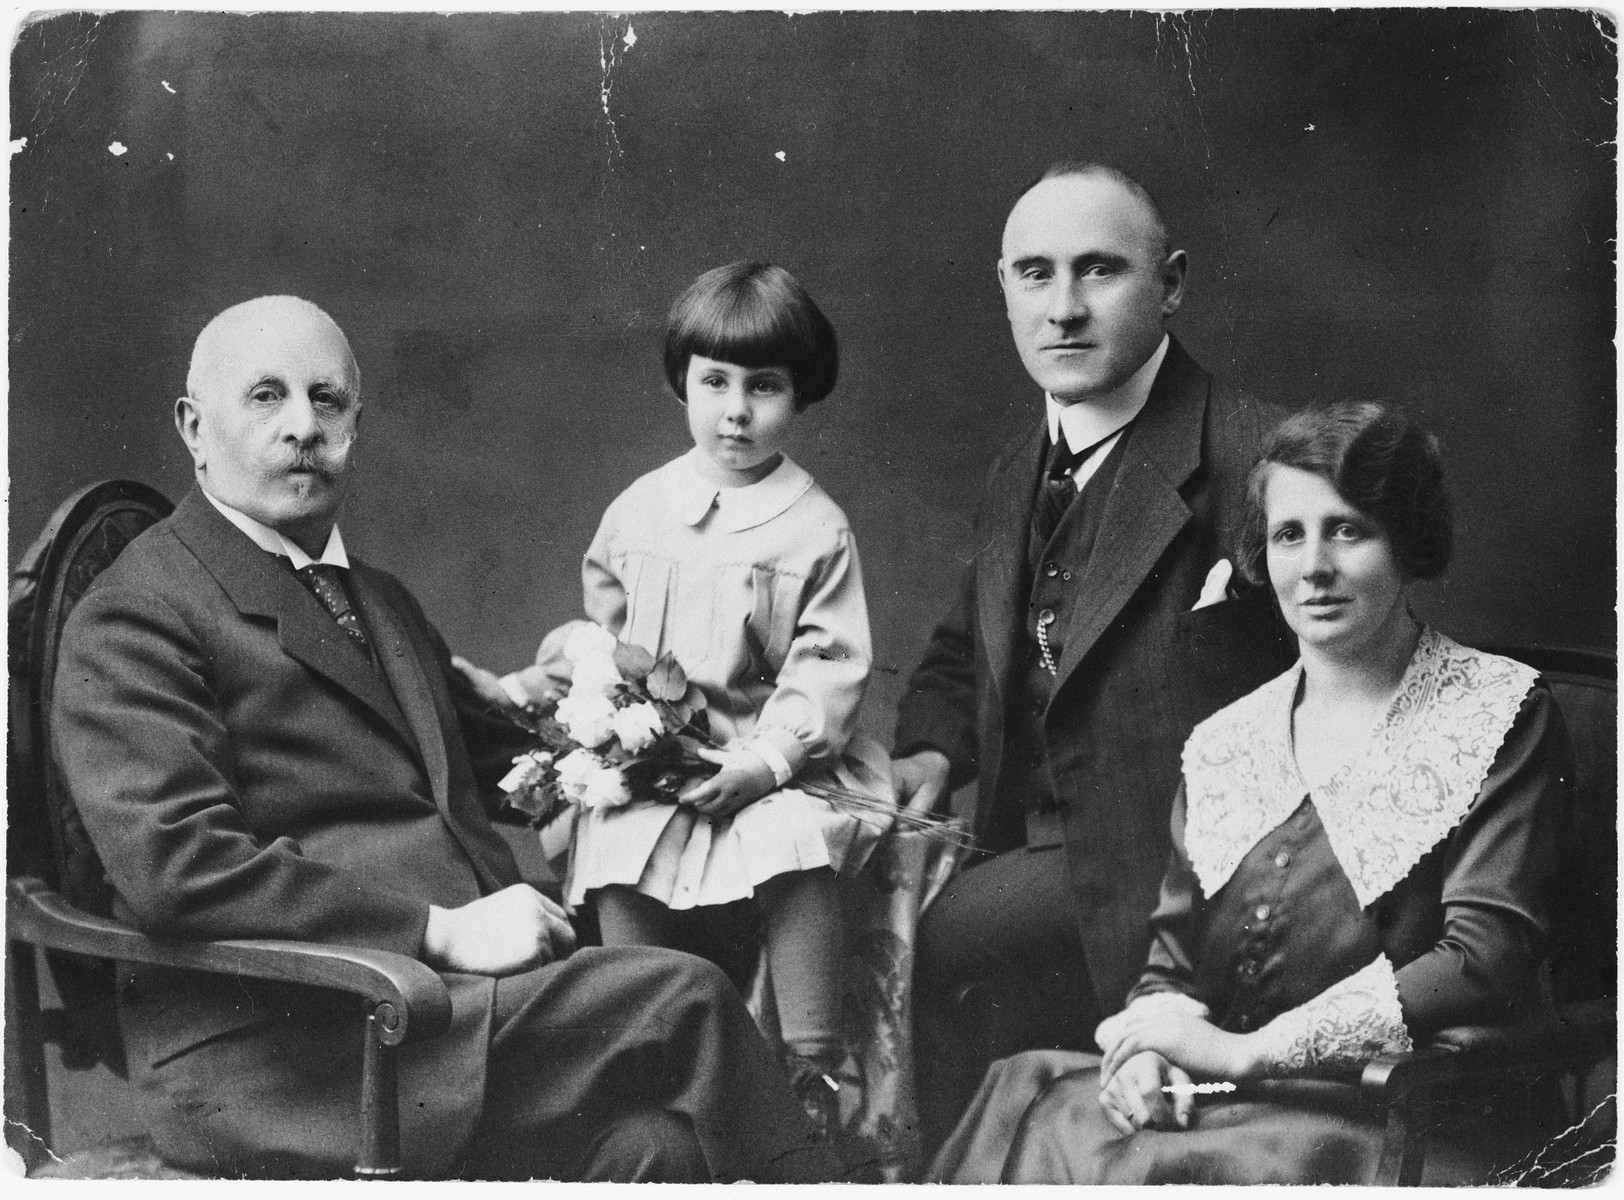 Studio portrait of a Jewish family in Stettin, Germany.  Pictured from left to right are: Max Berndt, Ilse Wulff, Herman Wulff, and Lotte (Berndt) Wulff.